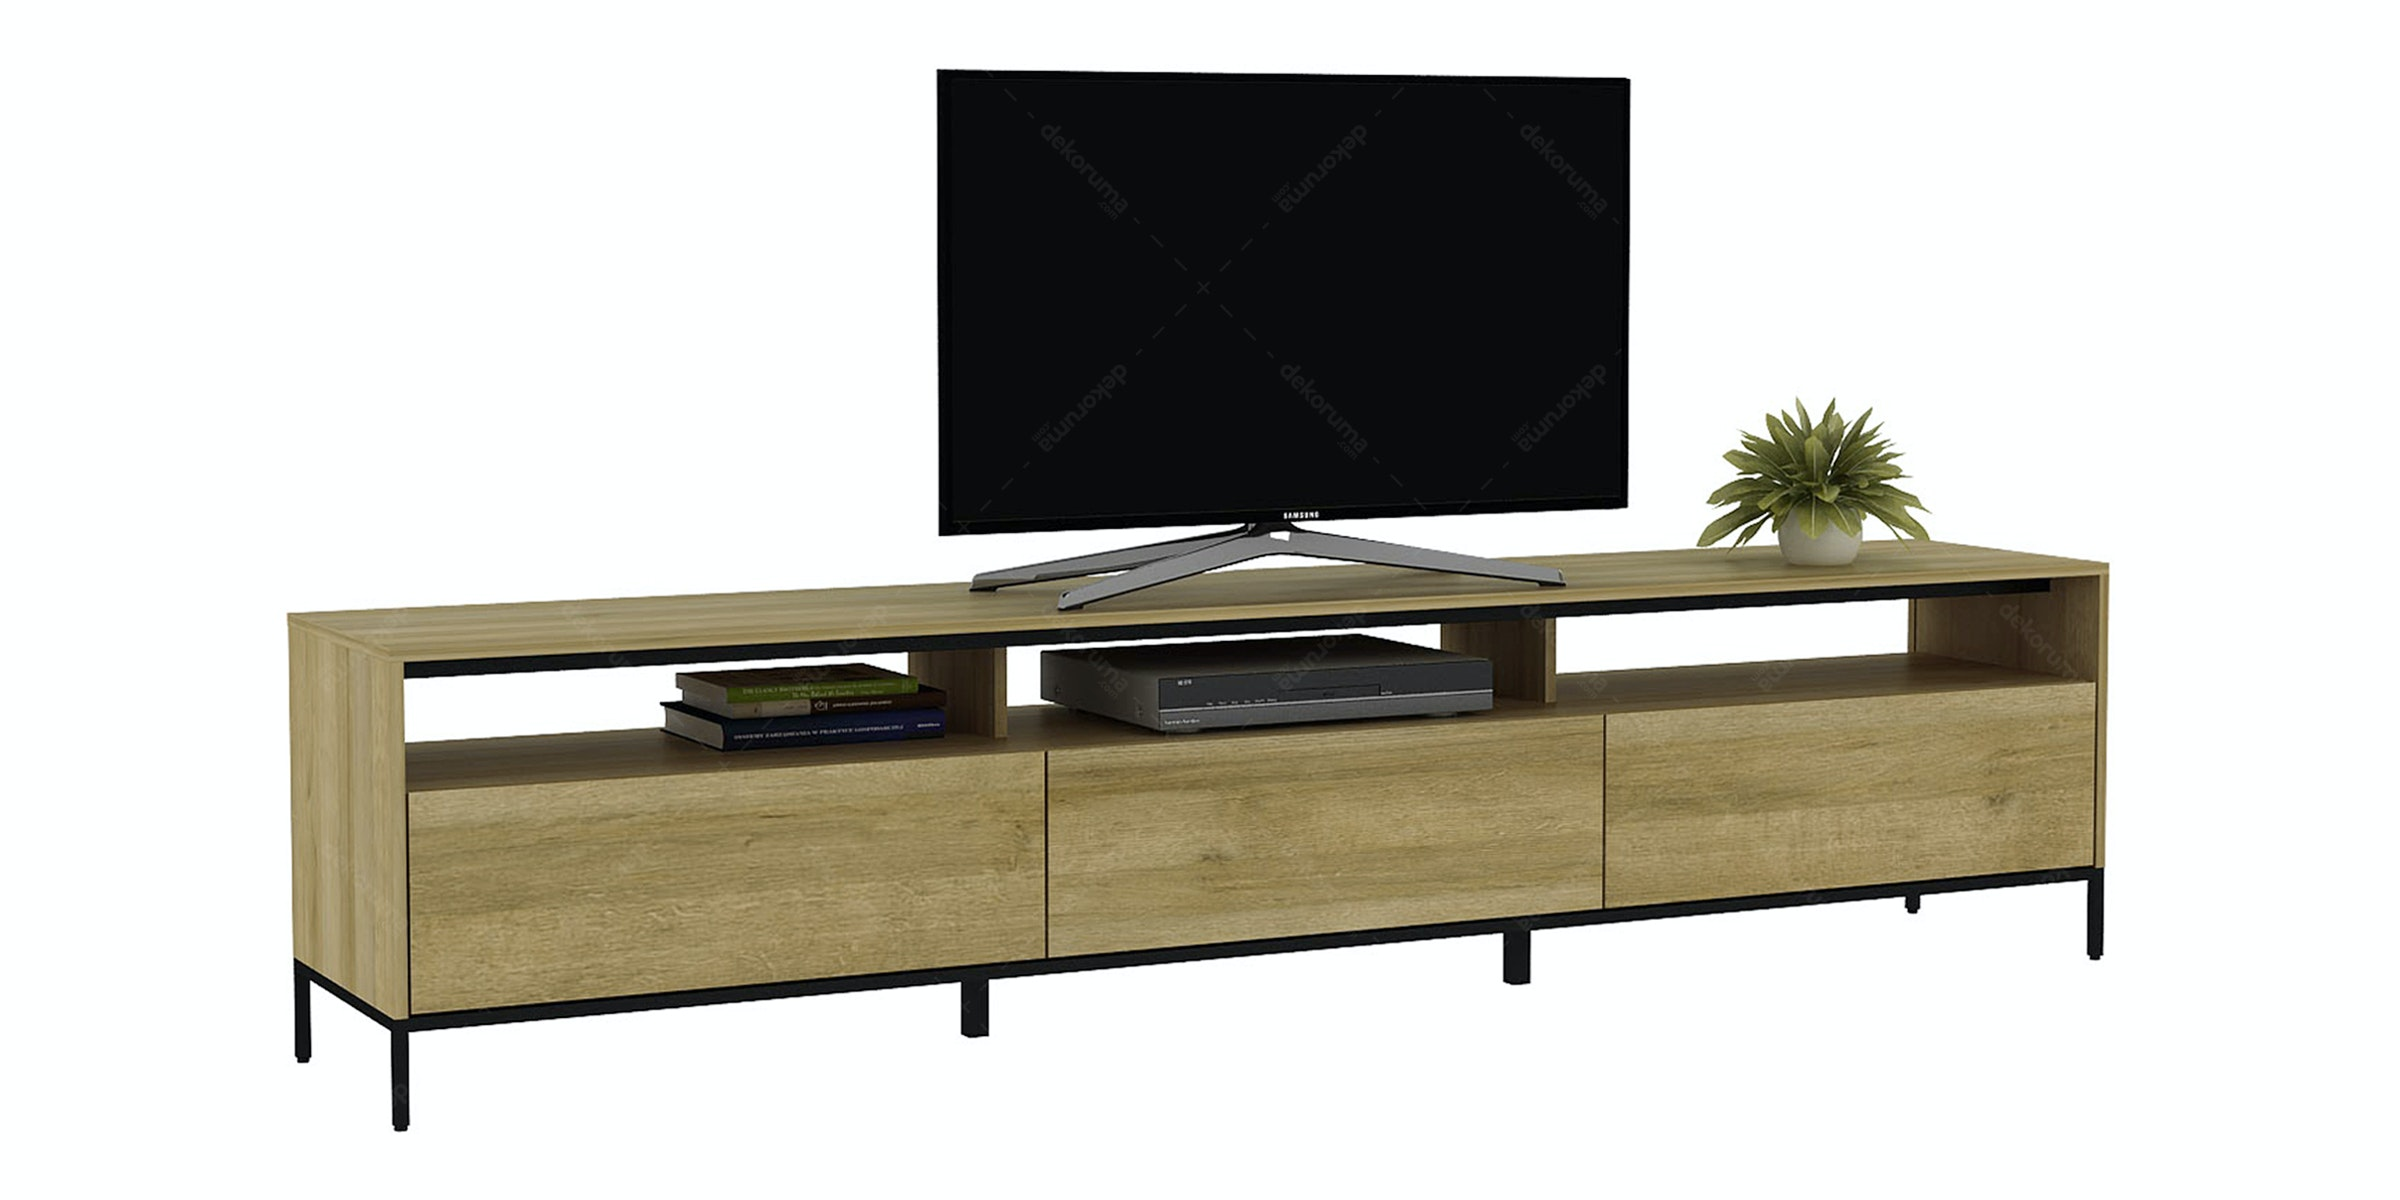 Pro Design Petra Rak TV 225 Yellow Oak